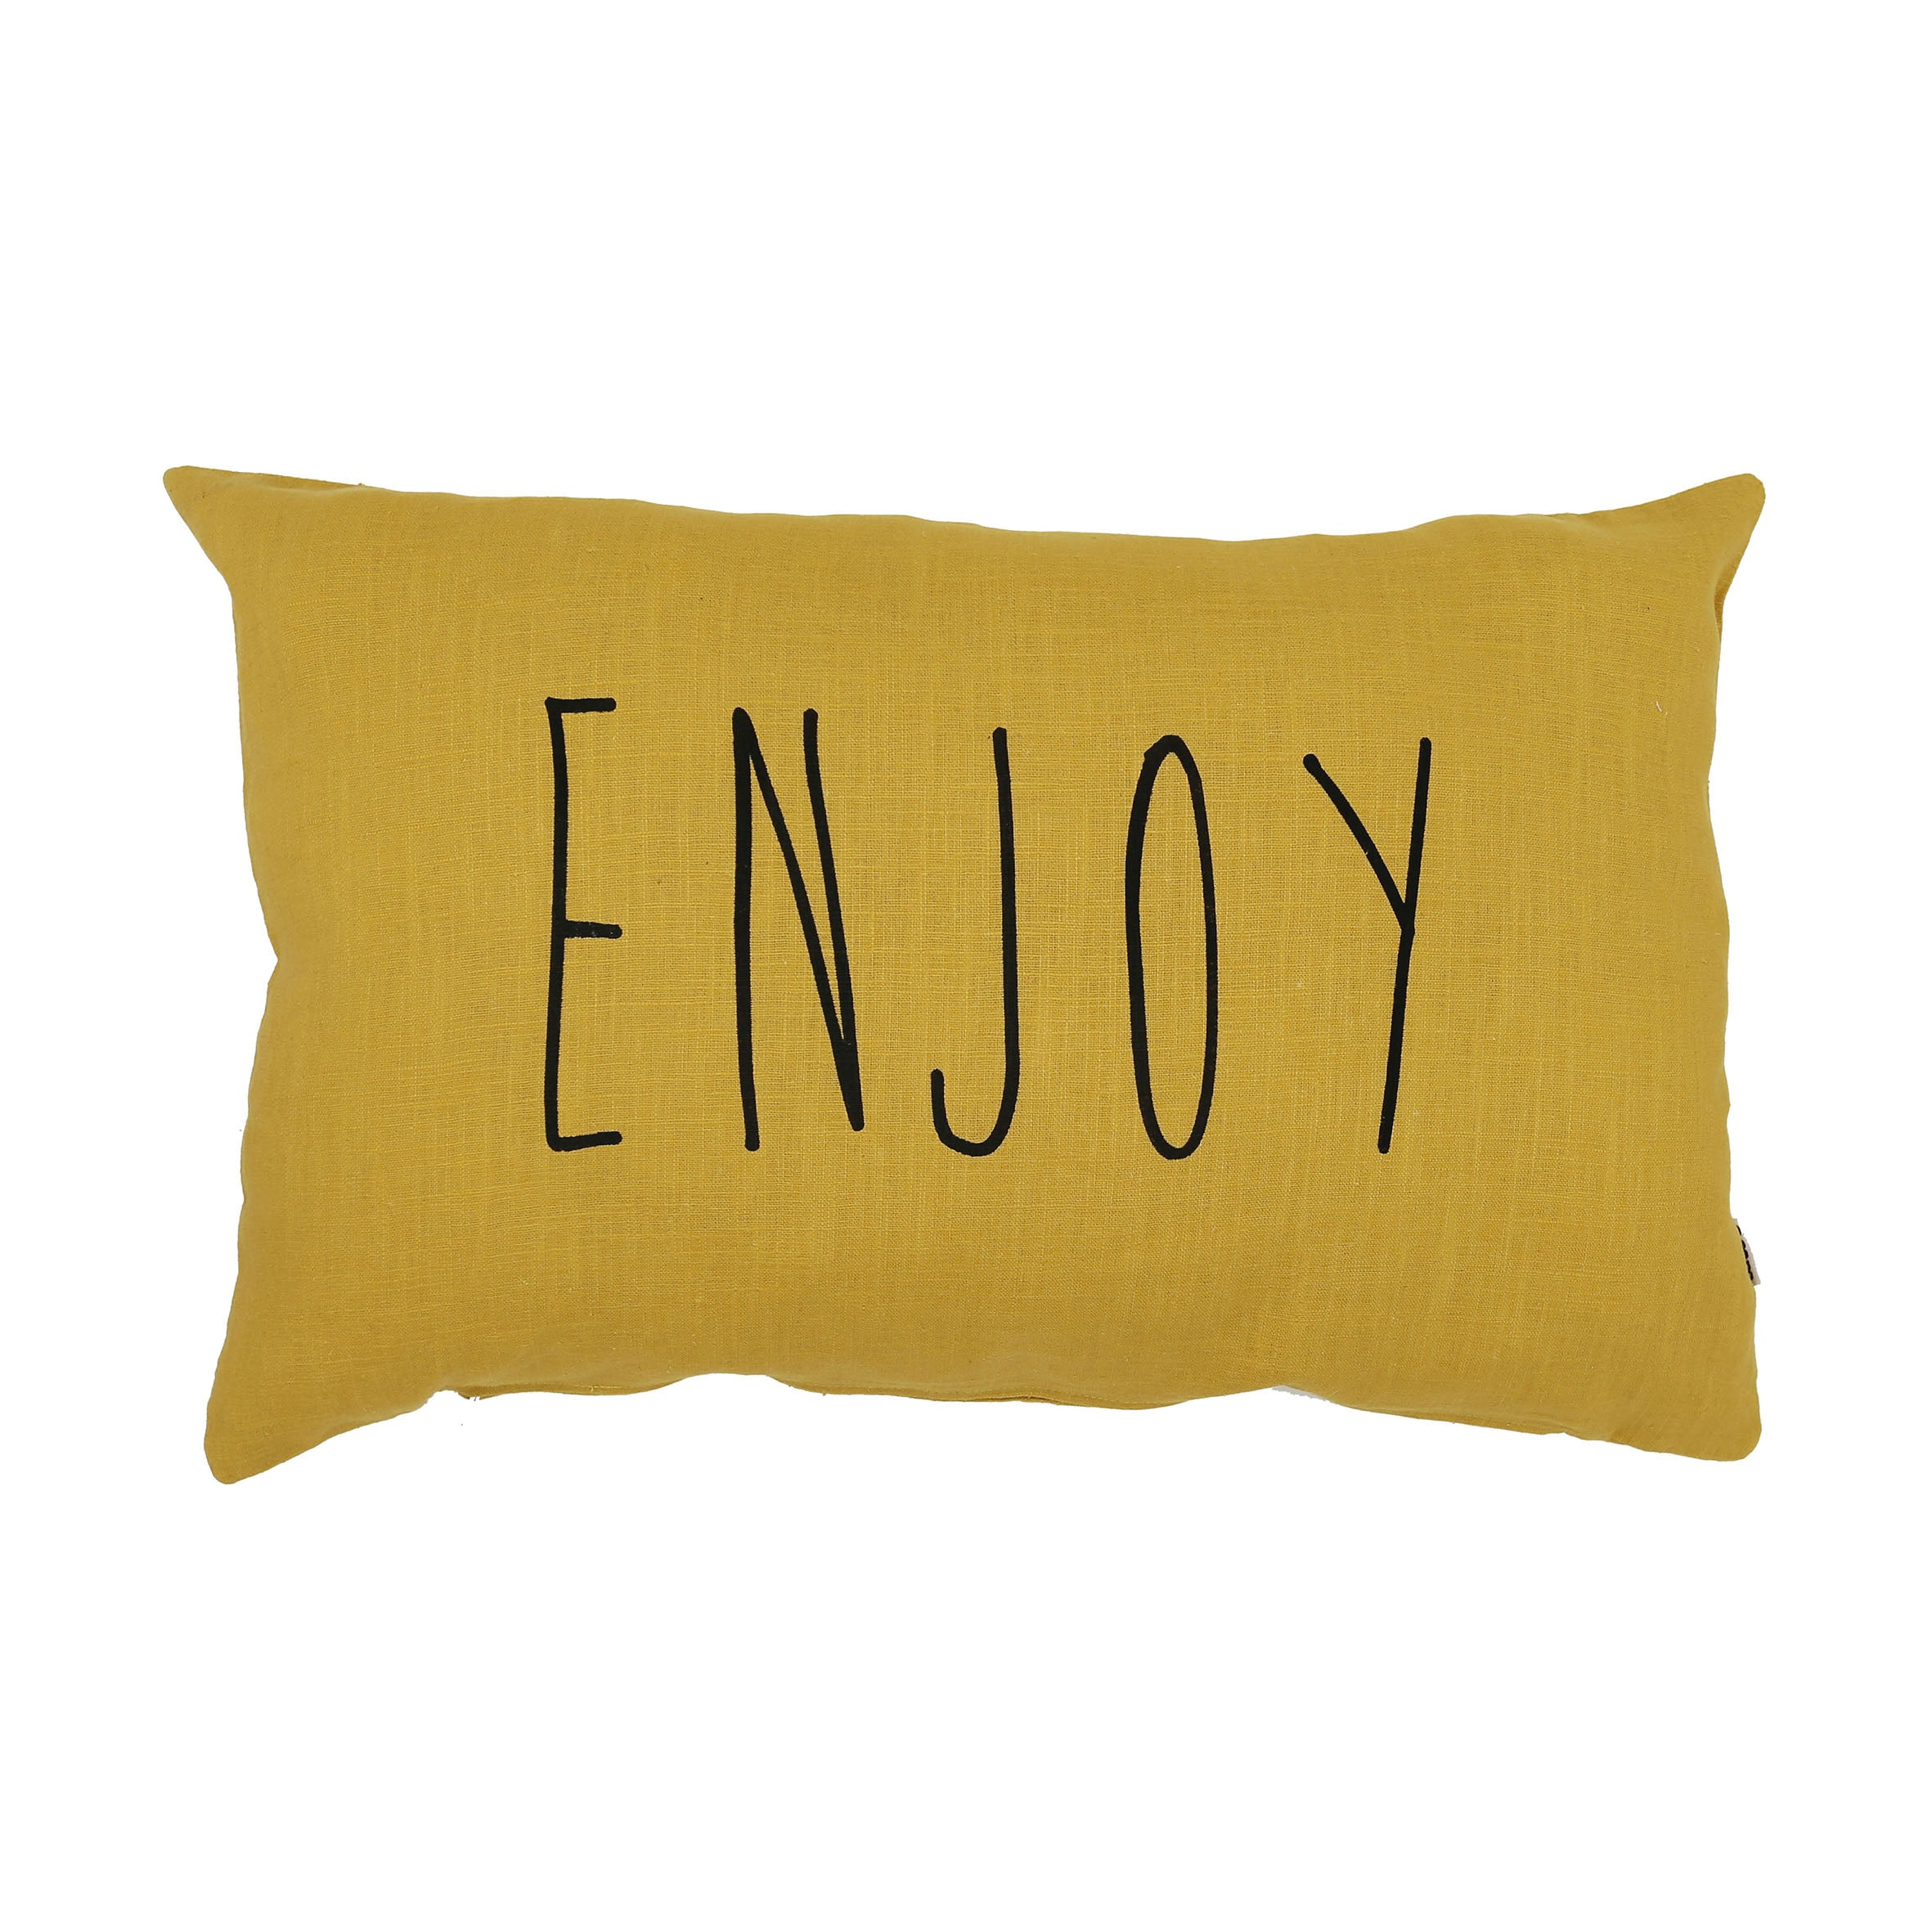 Handmade Cushion (Enjoy) - Mustard